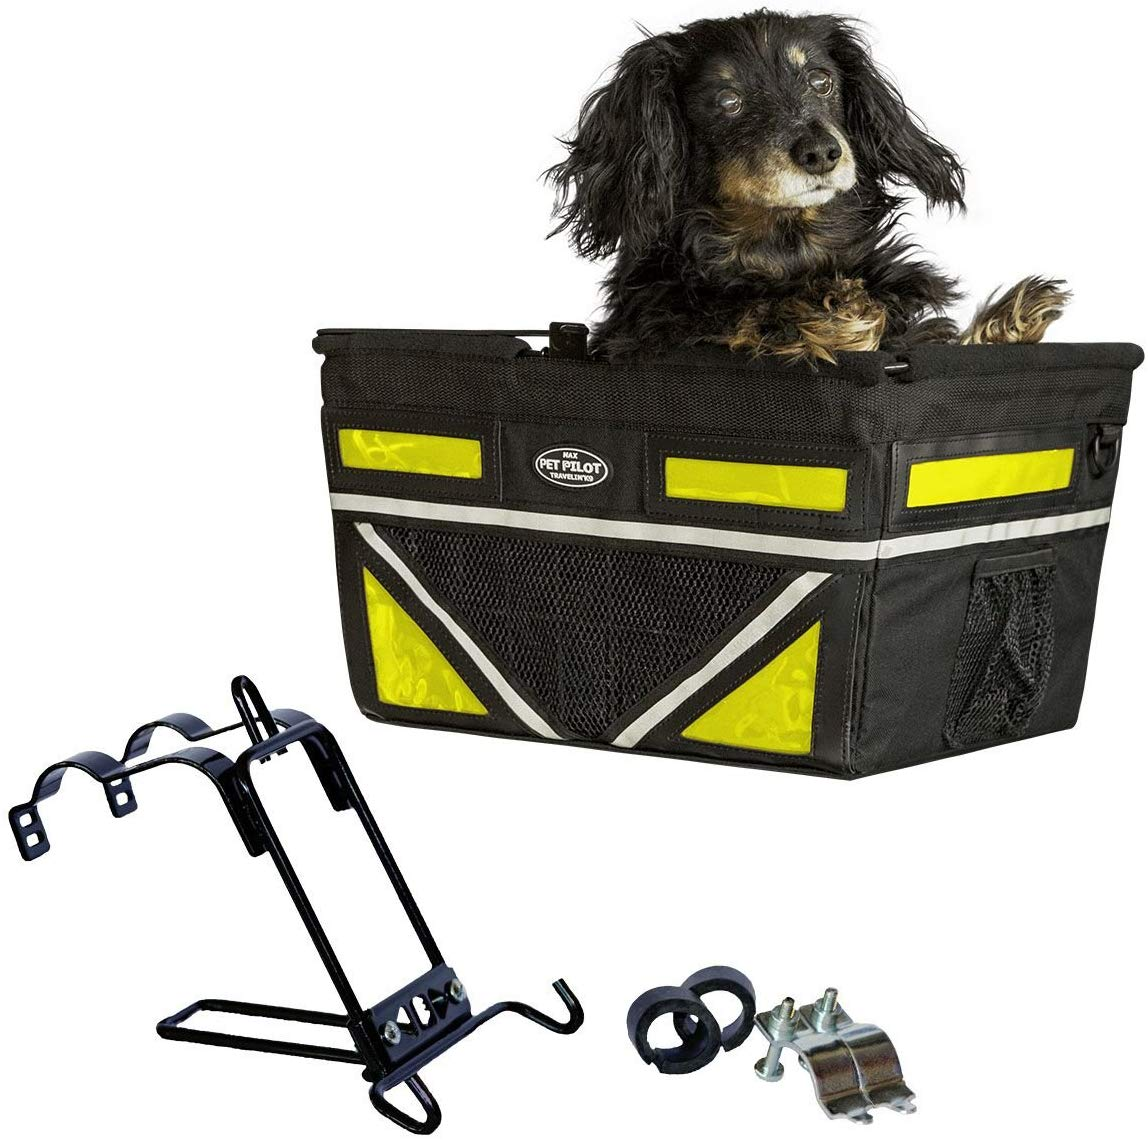 Travelin K9 2019 Pet-Pilot MAX Large Bike Basket for Dogs & Cats, Neon Yellow